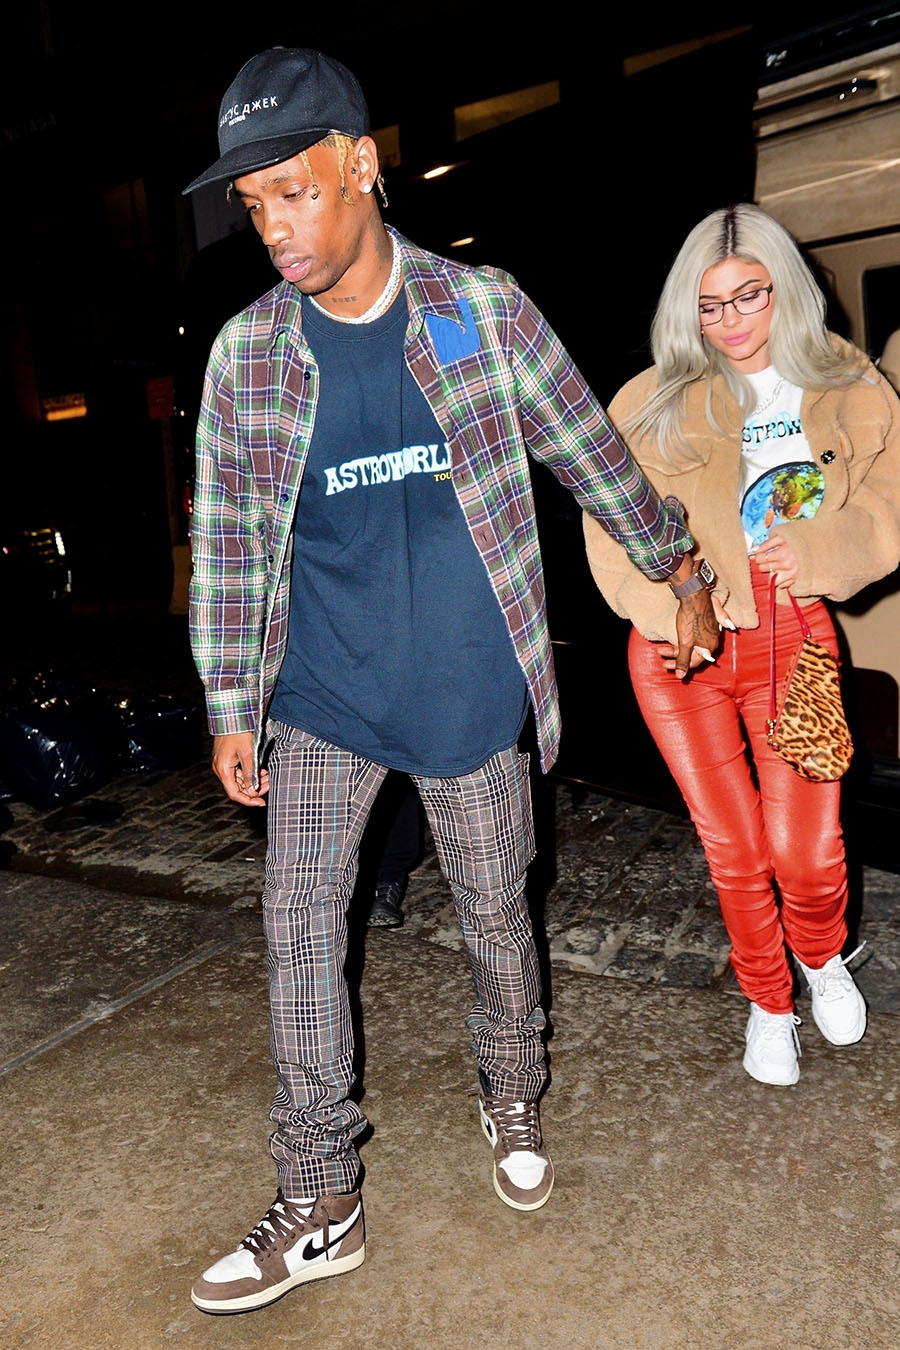 5f1bdca57ad6 Travis Scott and Kylie Jenner are spotted exiting their limo after  attending Travis' Astroworld concert at Madison Square Garden in New York.